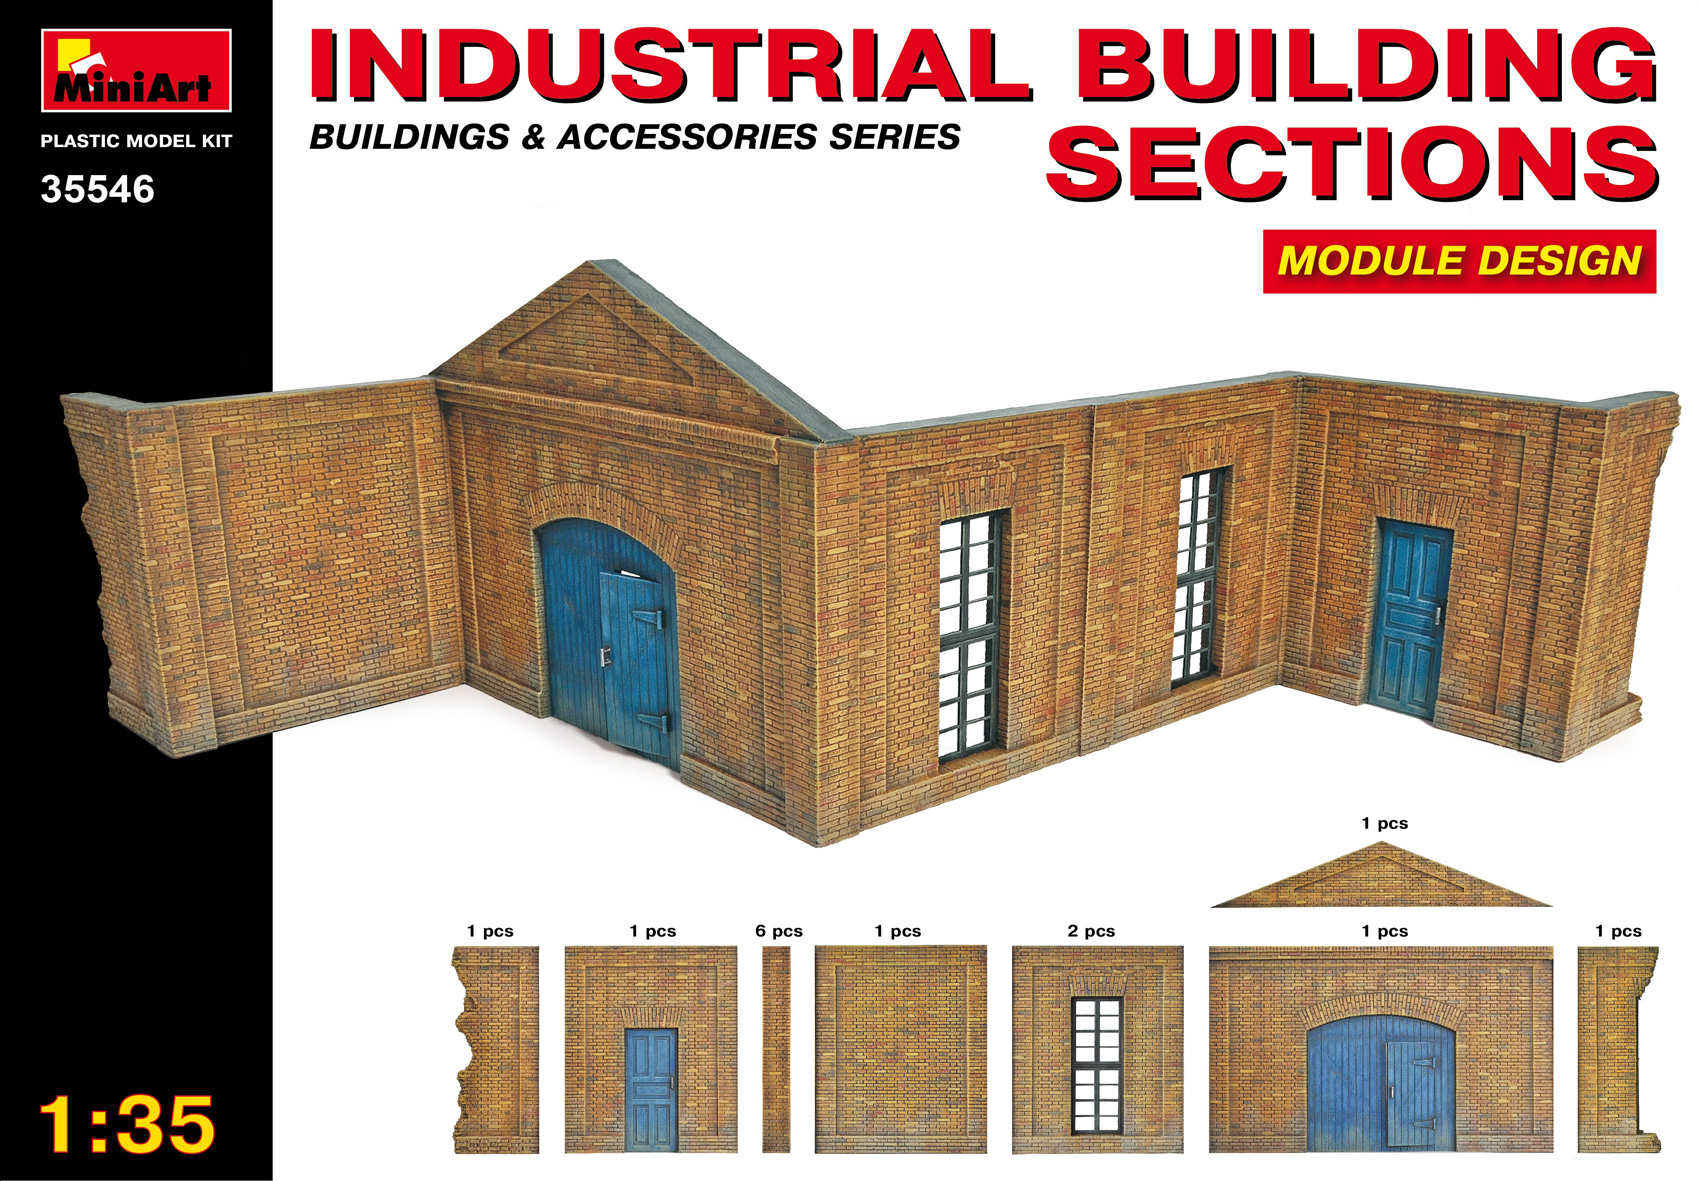 35546 INDUSTRIAL BUILDING SECTIONS